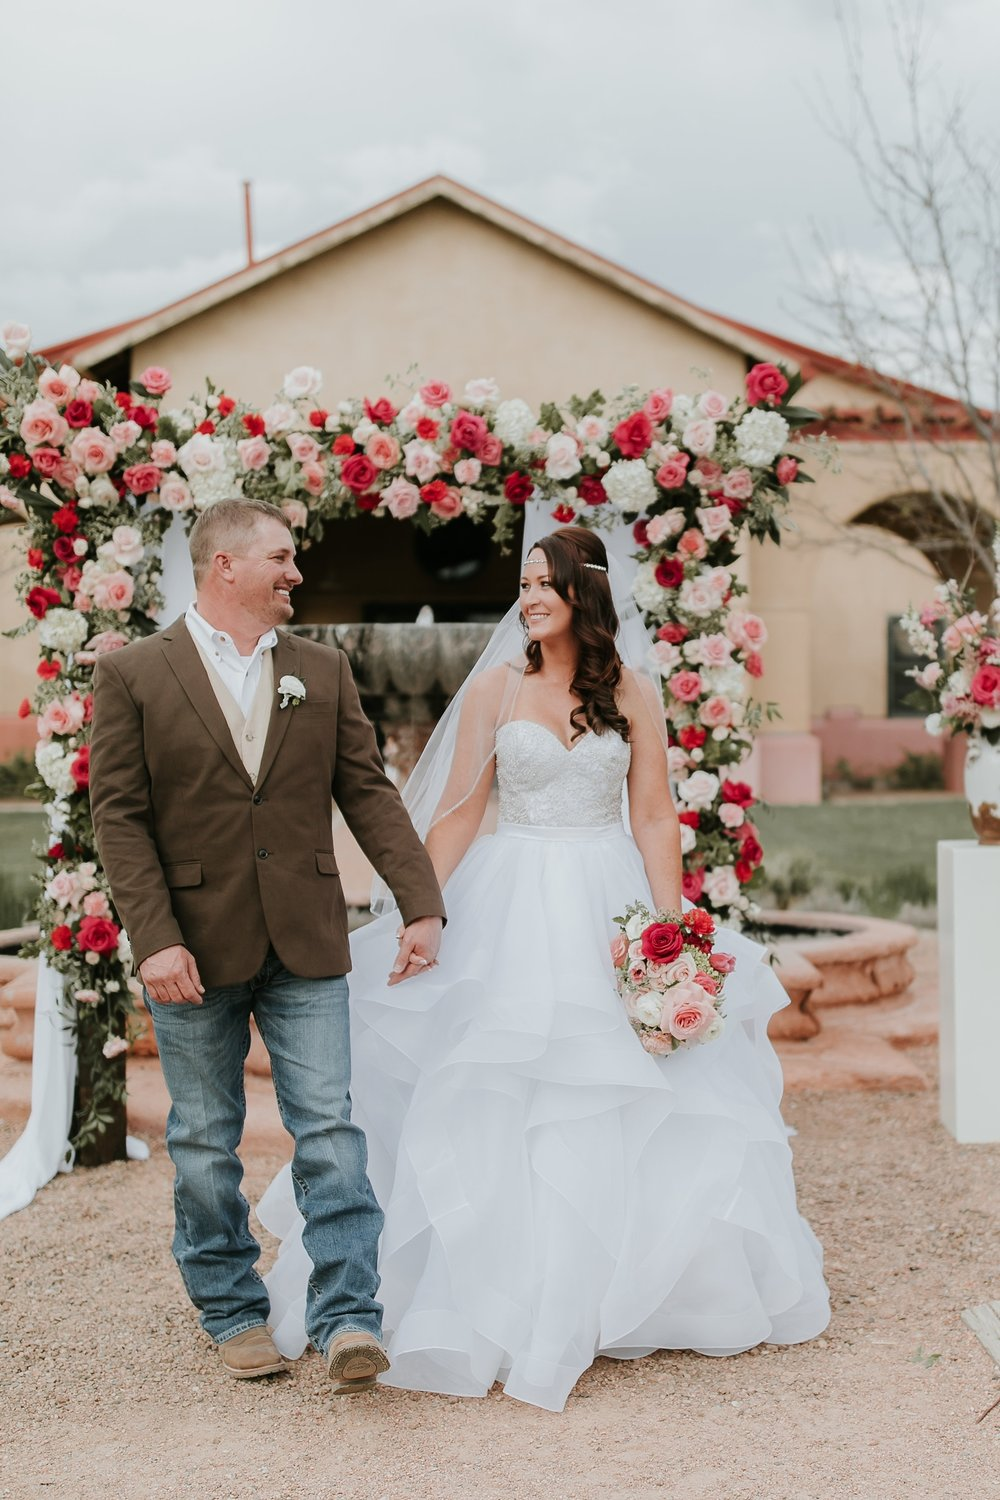 Alicia+lucia+photography+-+albuquerque+wedding+photographer+-+santa+fe+wedding+photography+-+new+mexico+wedding+photographer+-+new+mexico+engagement+-+la+mesita+ranch+wedding+-+la+mesita+ranch+spring+wedding_0047.jpg